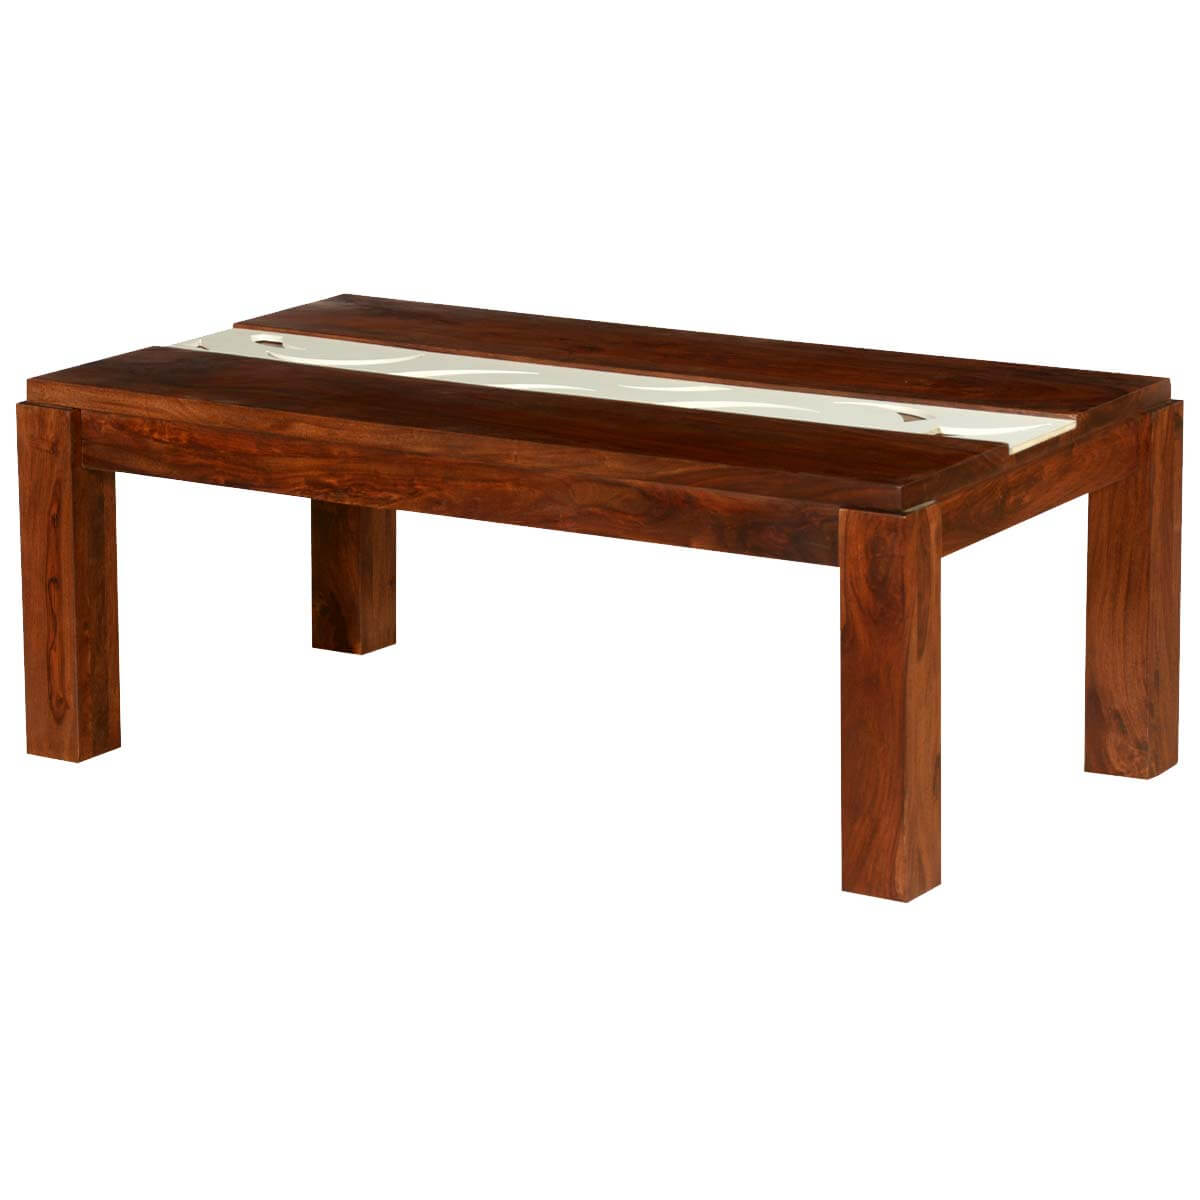 Stokes white stripe solid wood 46 coffee table for White wood coffee table